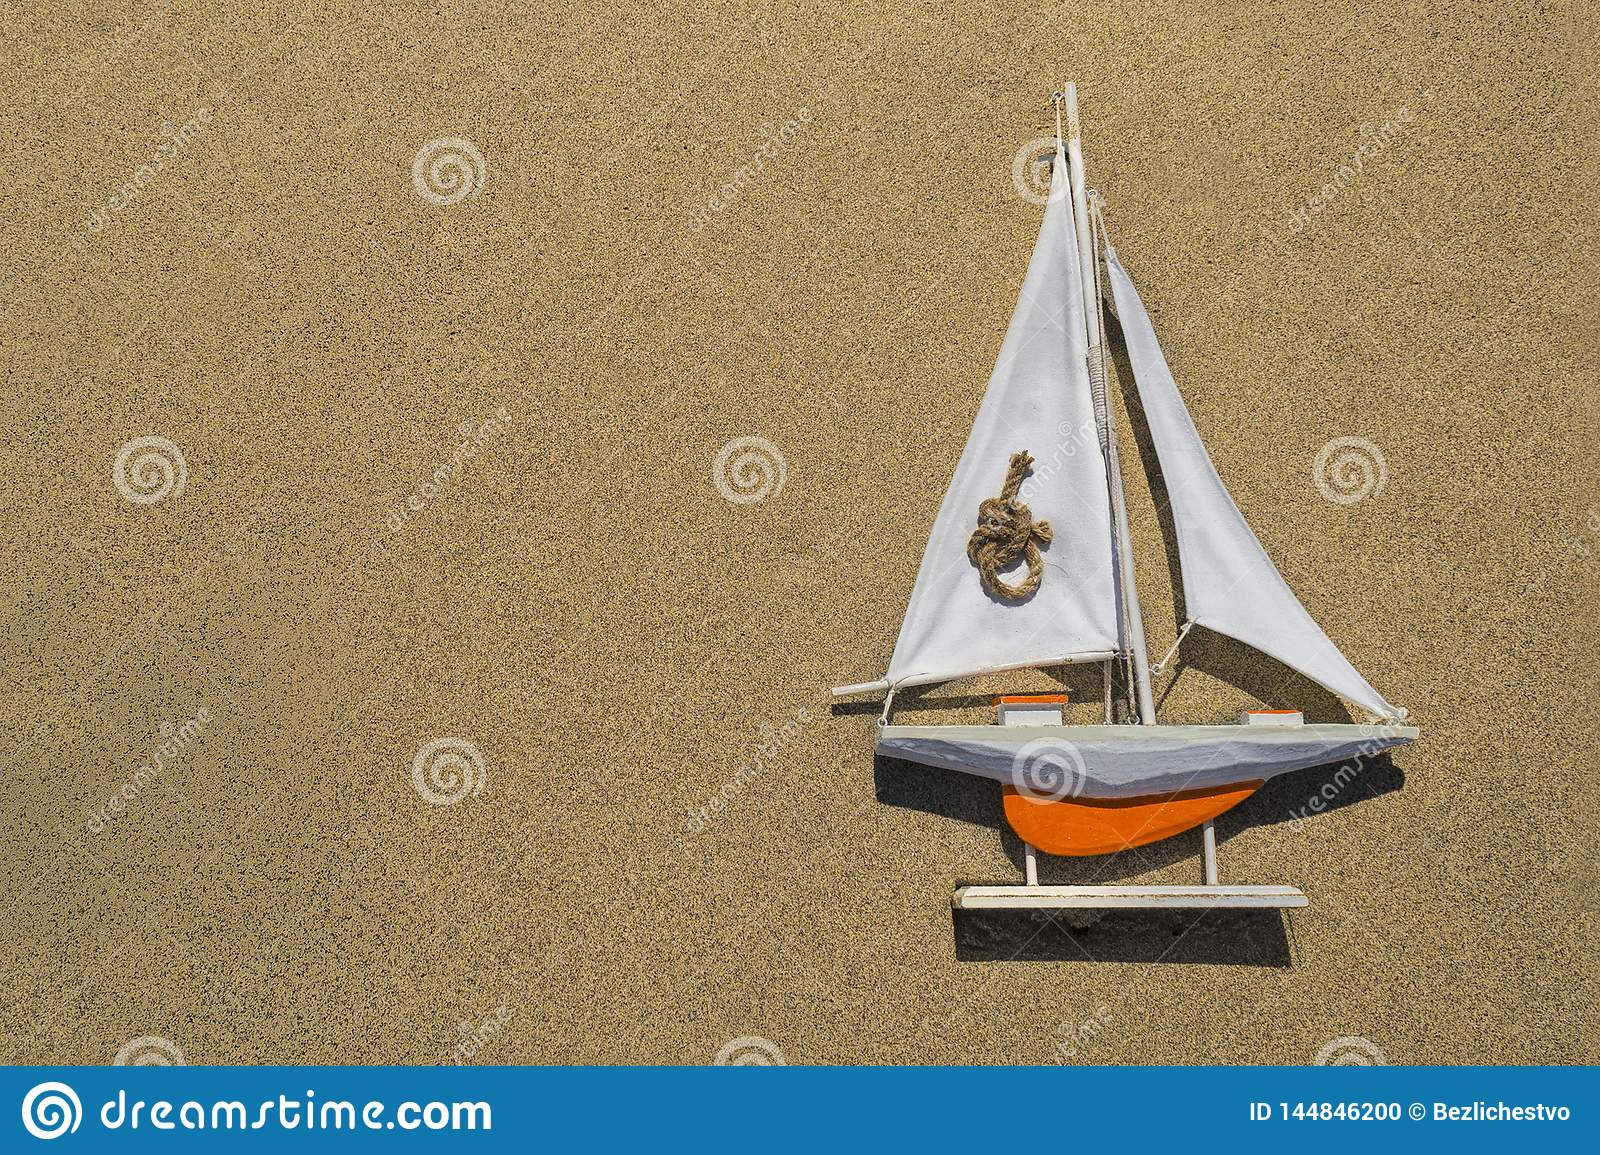 A toy orange ship with a white sail is lying on the textured sand on the right